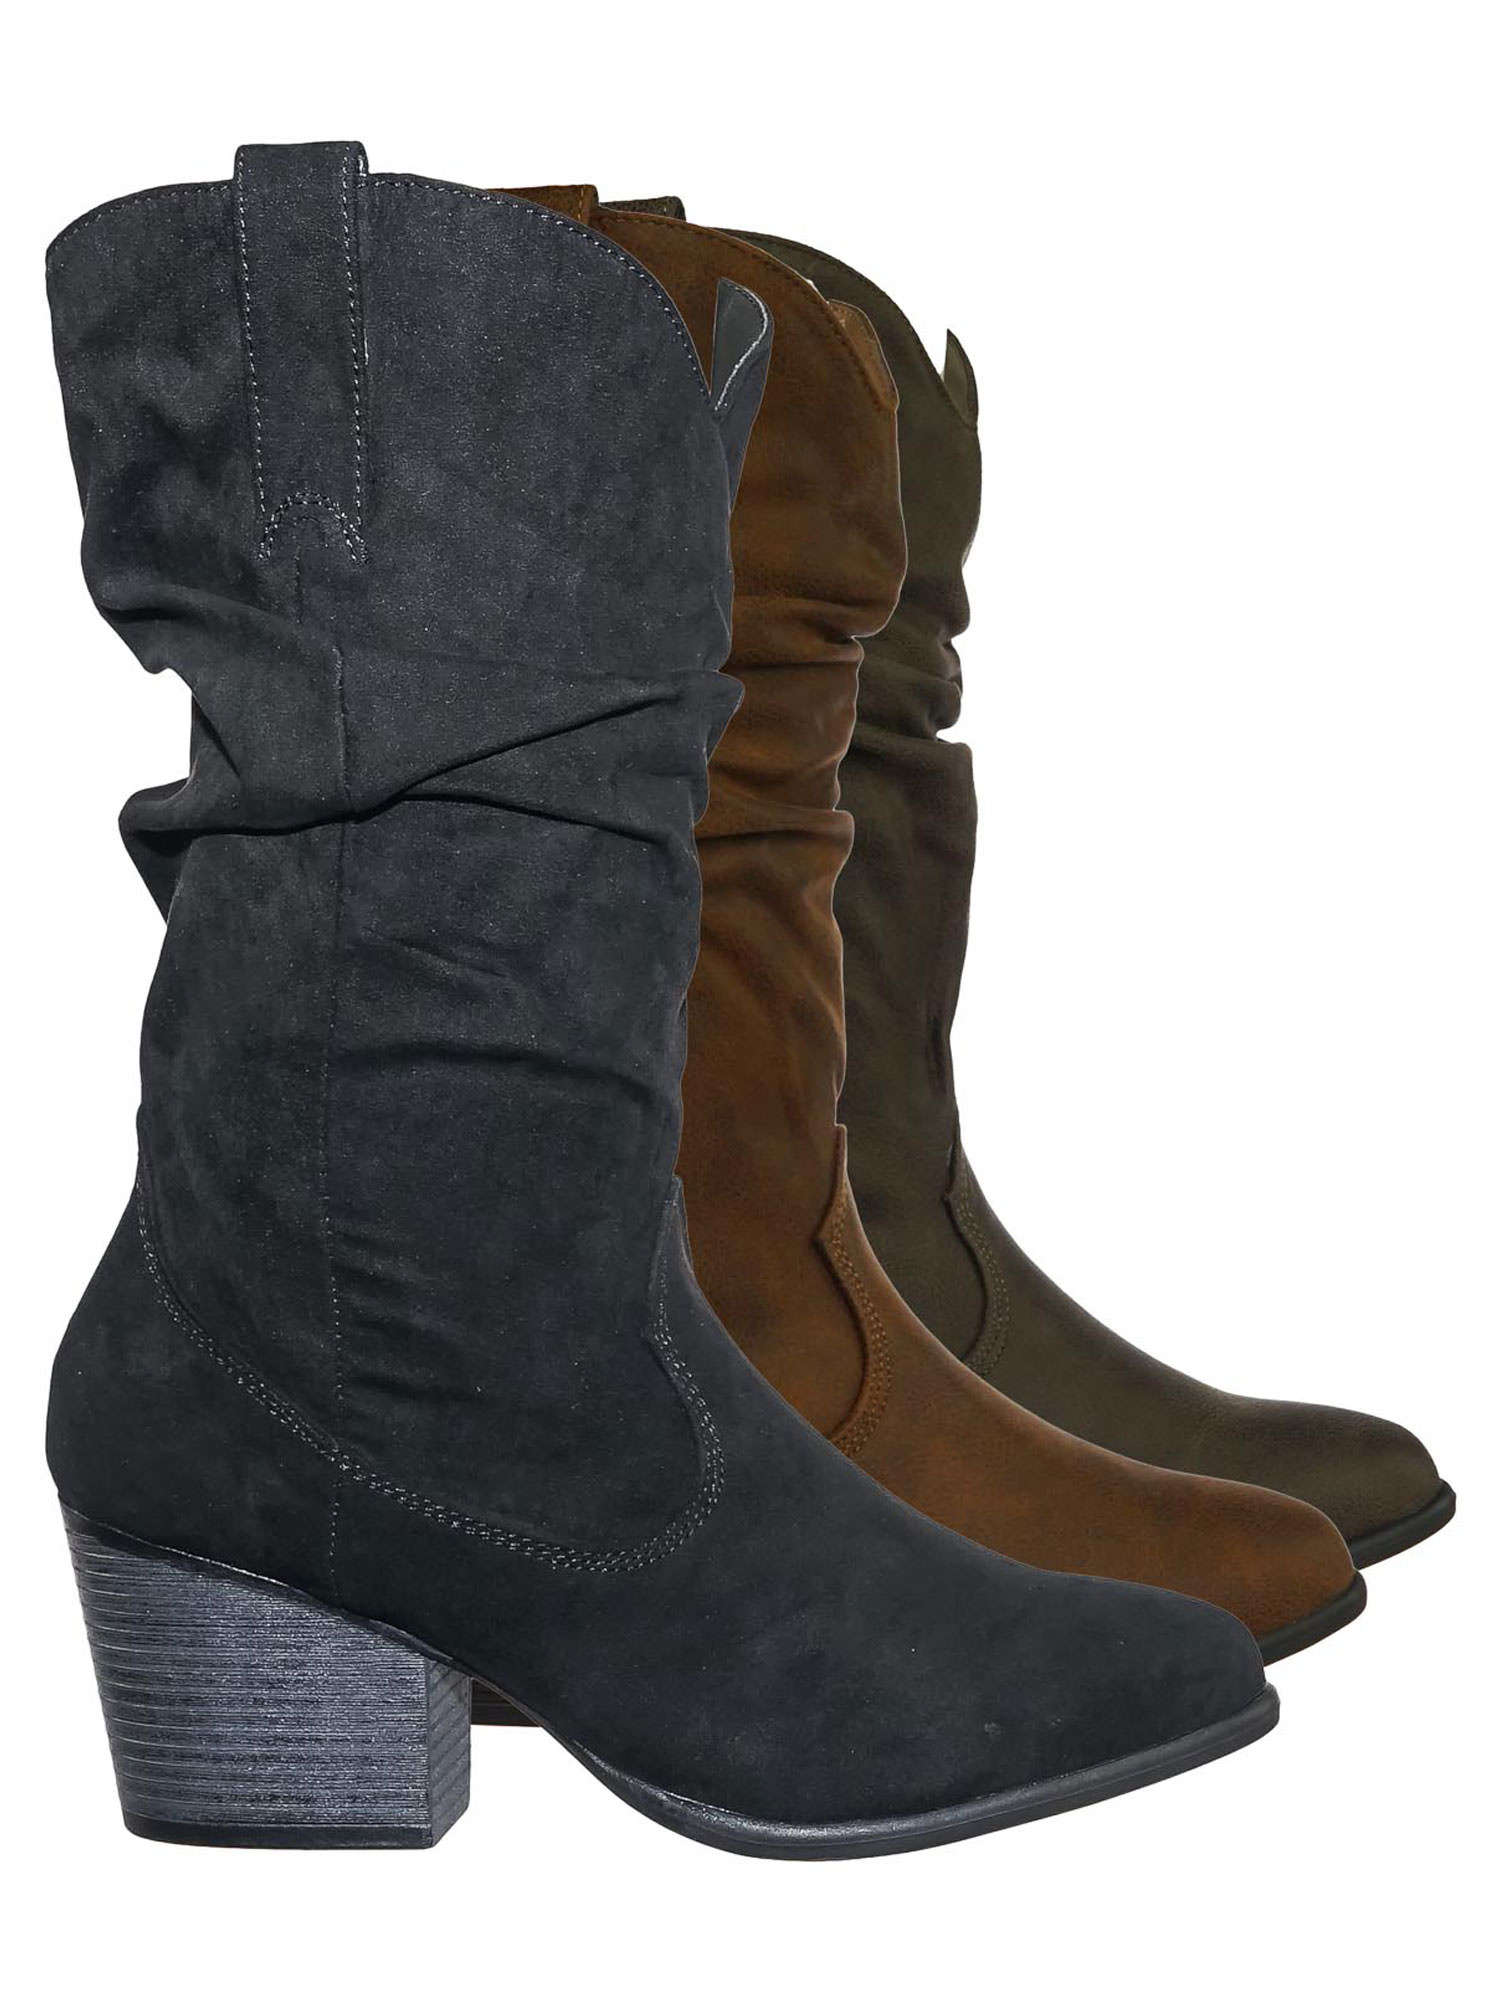 Rancher07 by Bamboo, Faux Fur Inner Lining Western Cowboy Block High Heel Dress Boots